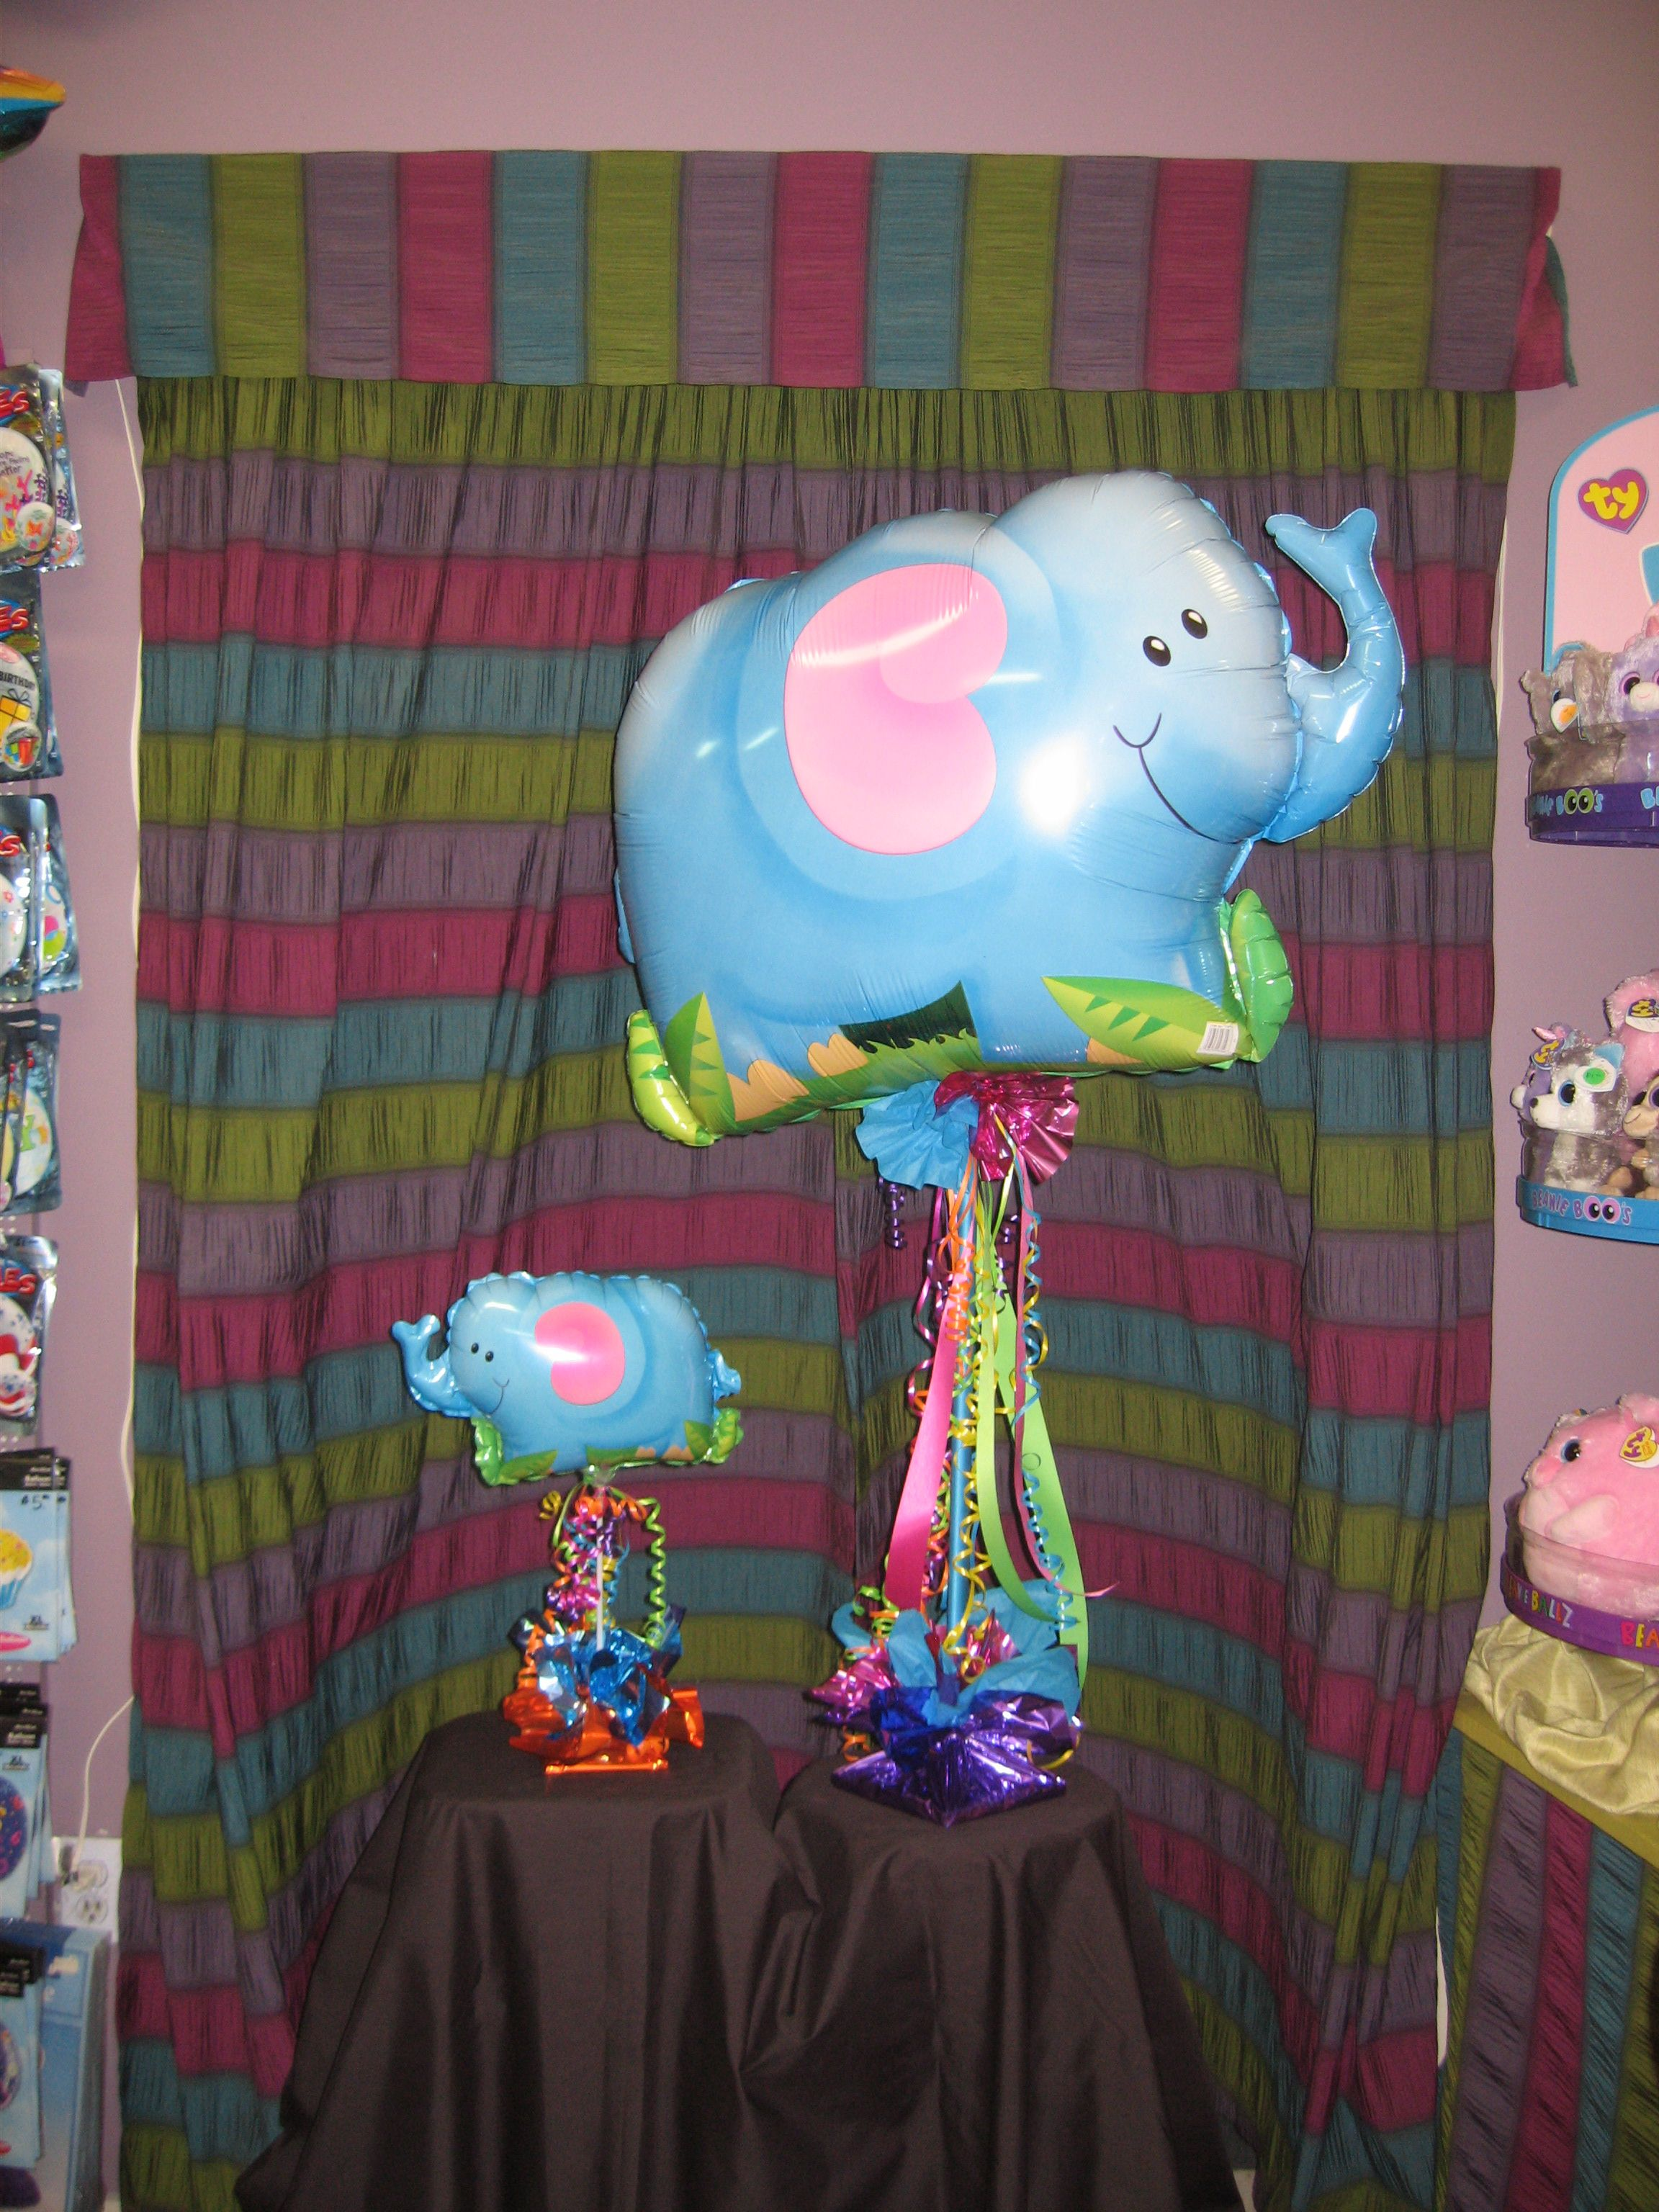 Elephant balloon centerpieces great for a jungle or